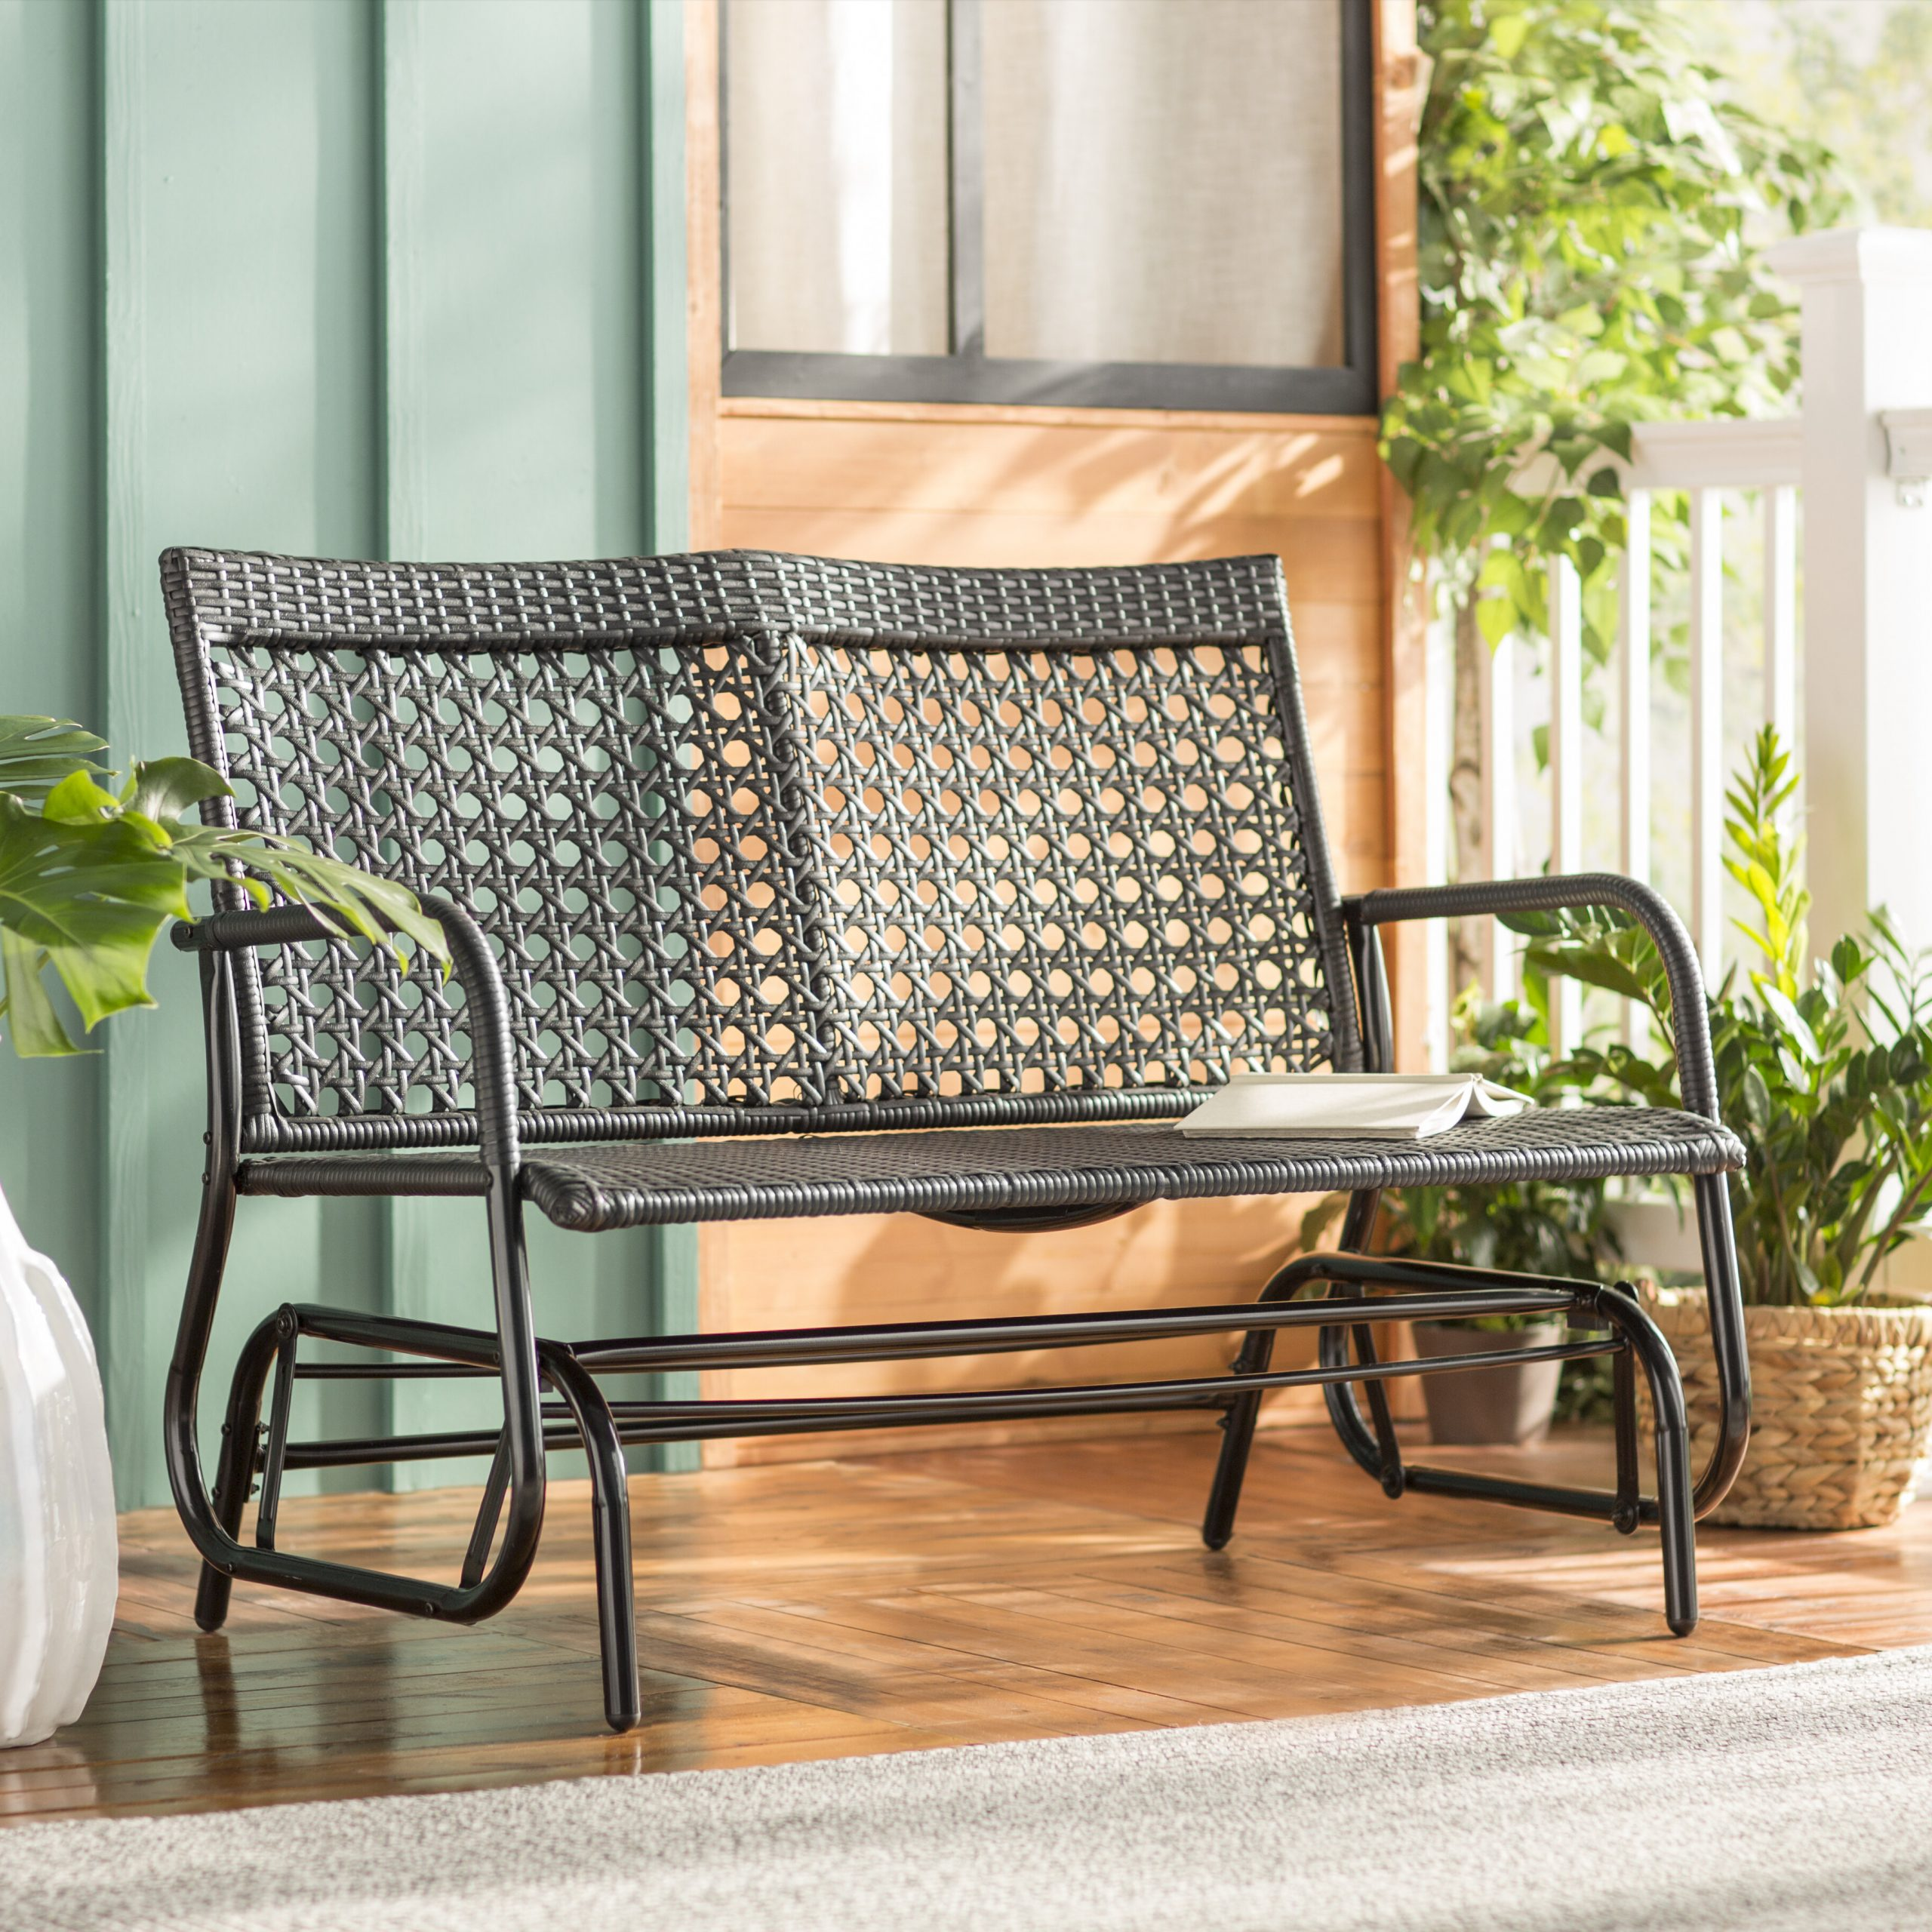 Widely Used Shupe Steel Rattan Outdoor Patio Double Bench Glider Regarding Speckled Glider Benches (View 20 of 30)